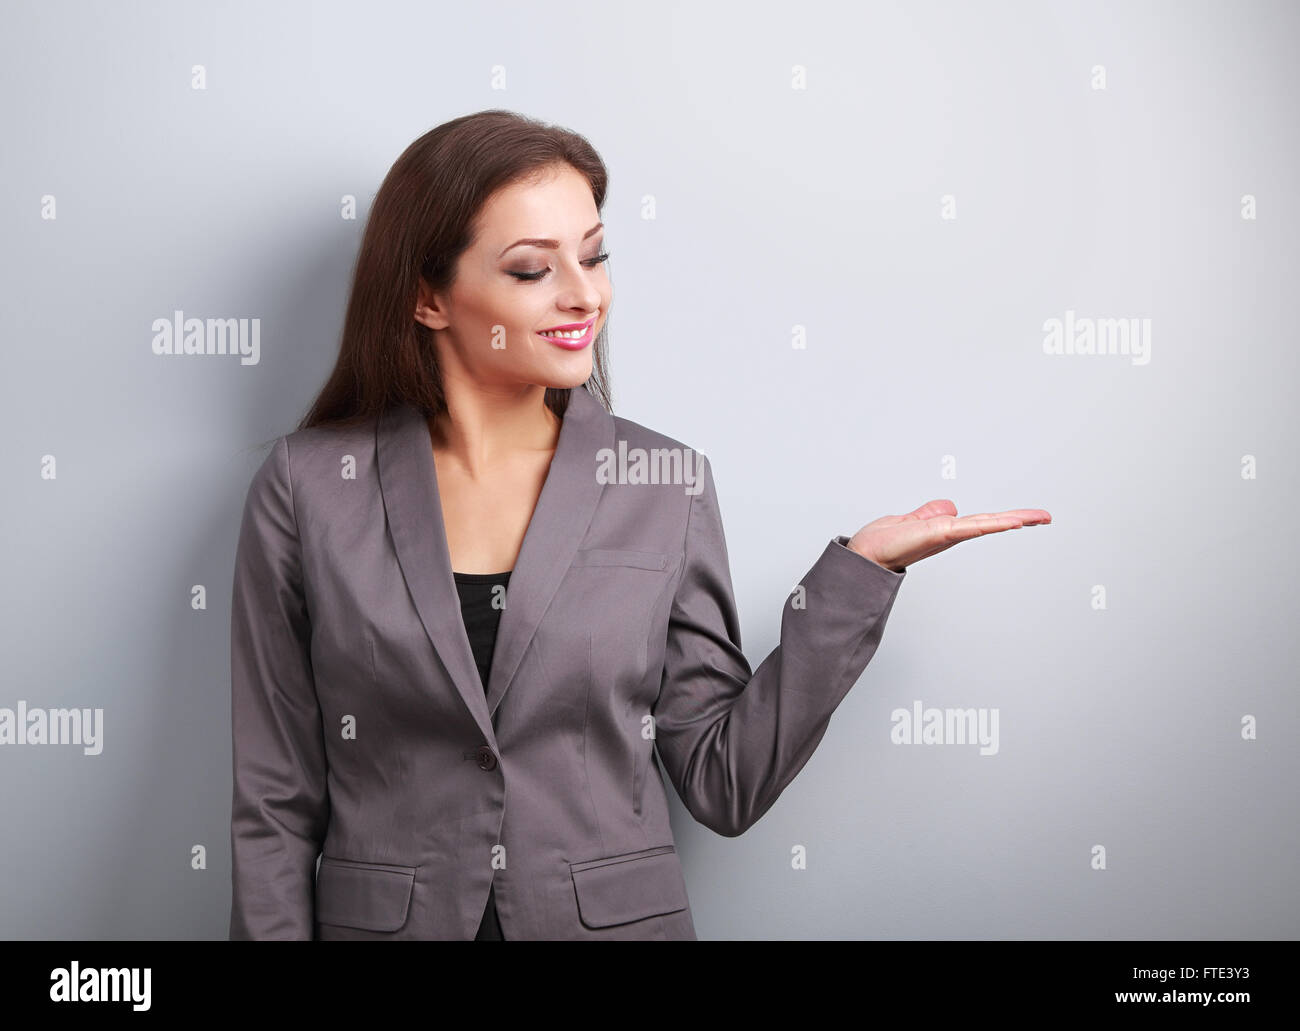 Happy business woman holding something empty in hand and demonstration on blue background - Stock Image